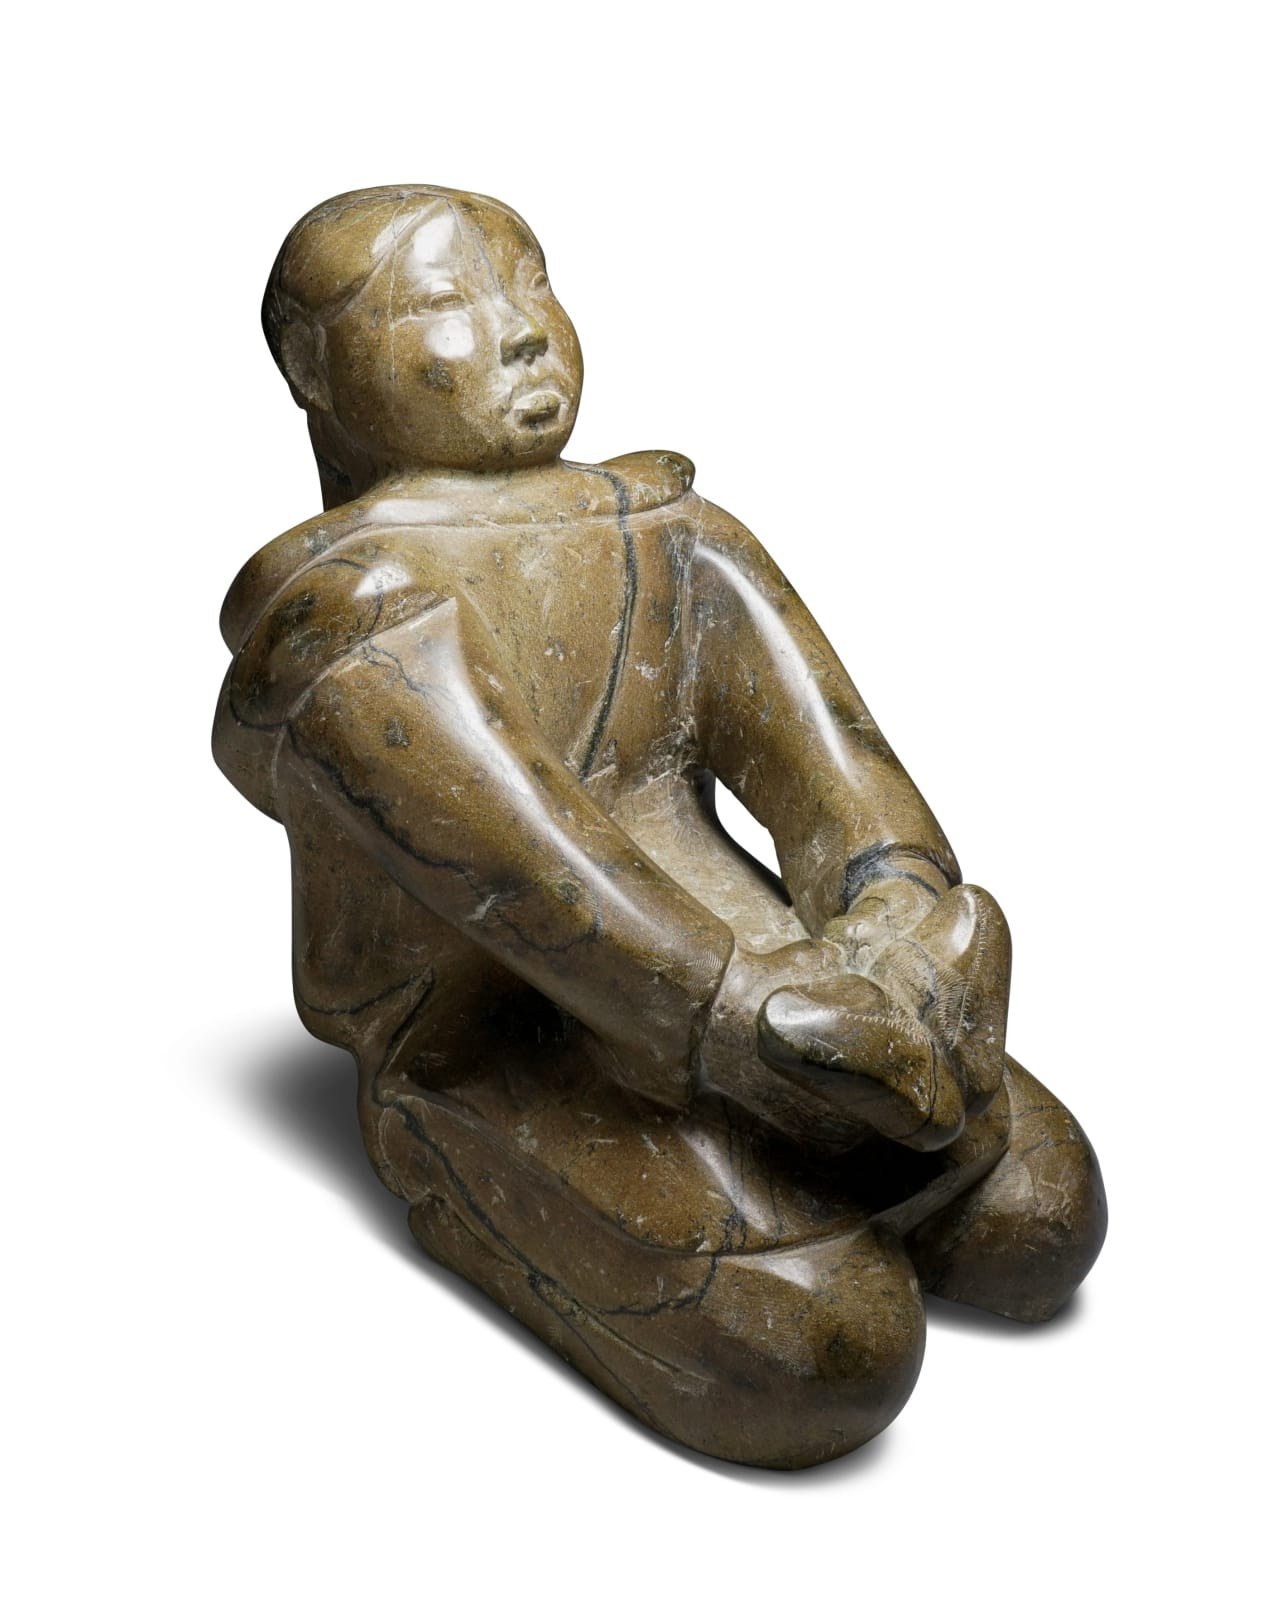 LOT 3 OSUITOK IPEELEE, R.C.A. (1923-2005) KINNGAIT (CAPE DORSET) Woman Holding Kamiks, early-mid 1970s stone, 12 x 7 1/2 x 11 in (30.5 x 19.1 x 27.9 cm) ESTIMATE: $3,500 — $4,500